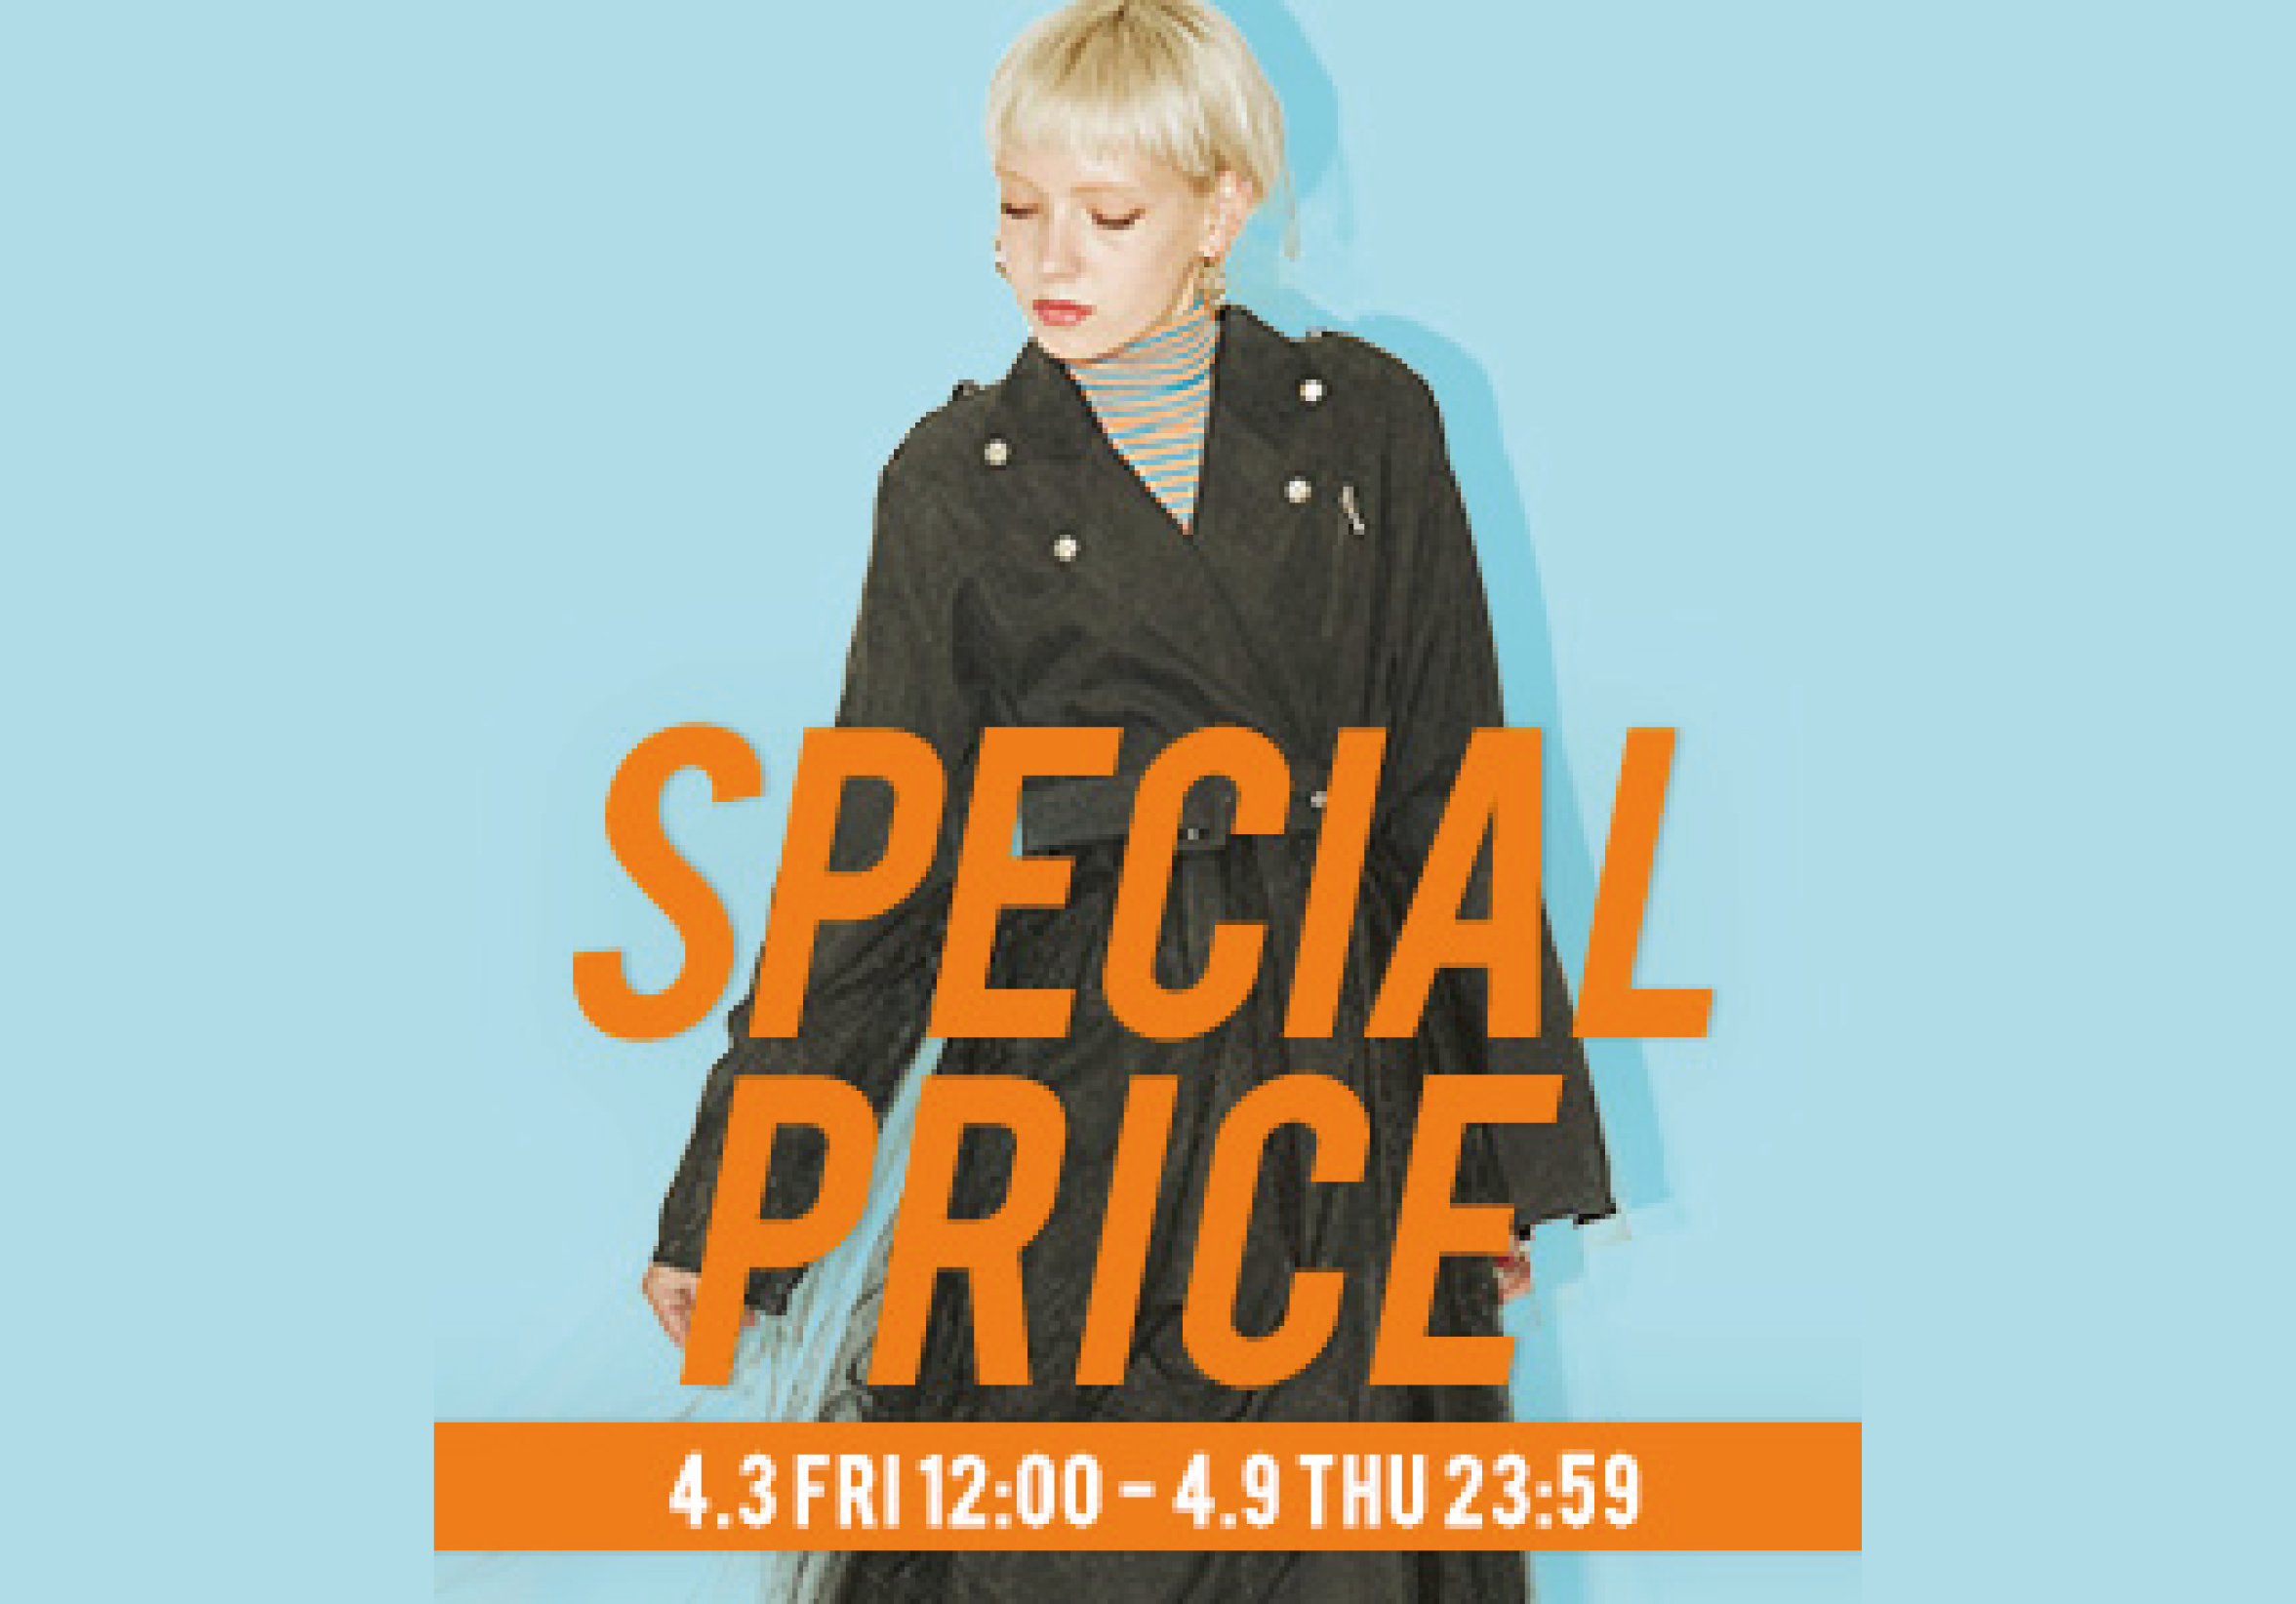 【 SPECIAL PRICE 】